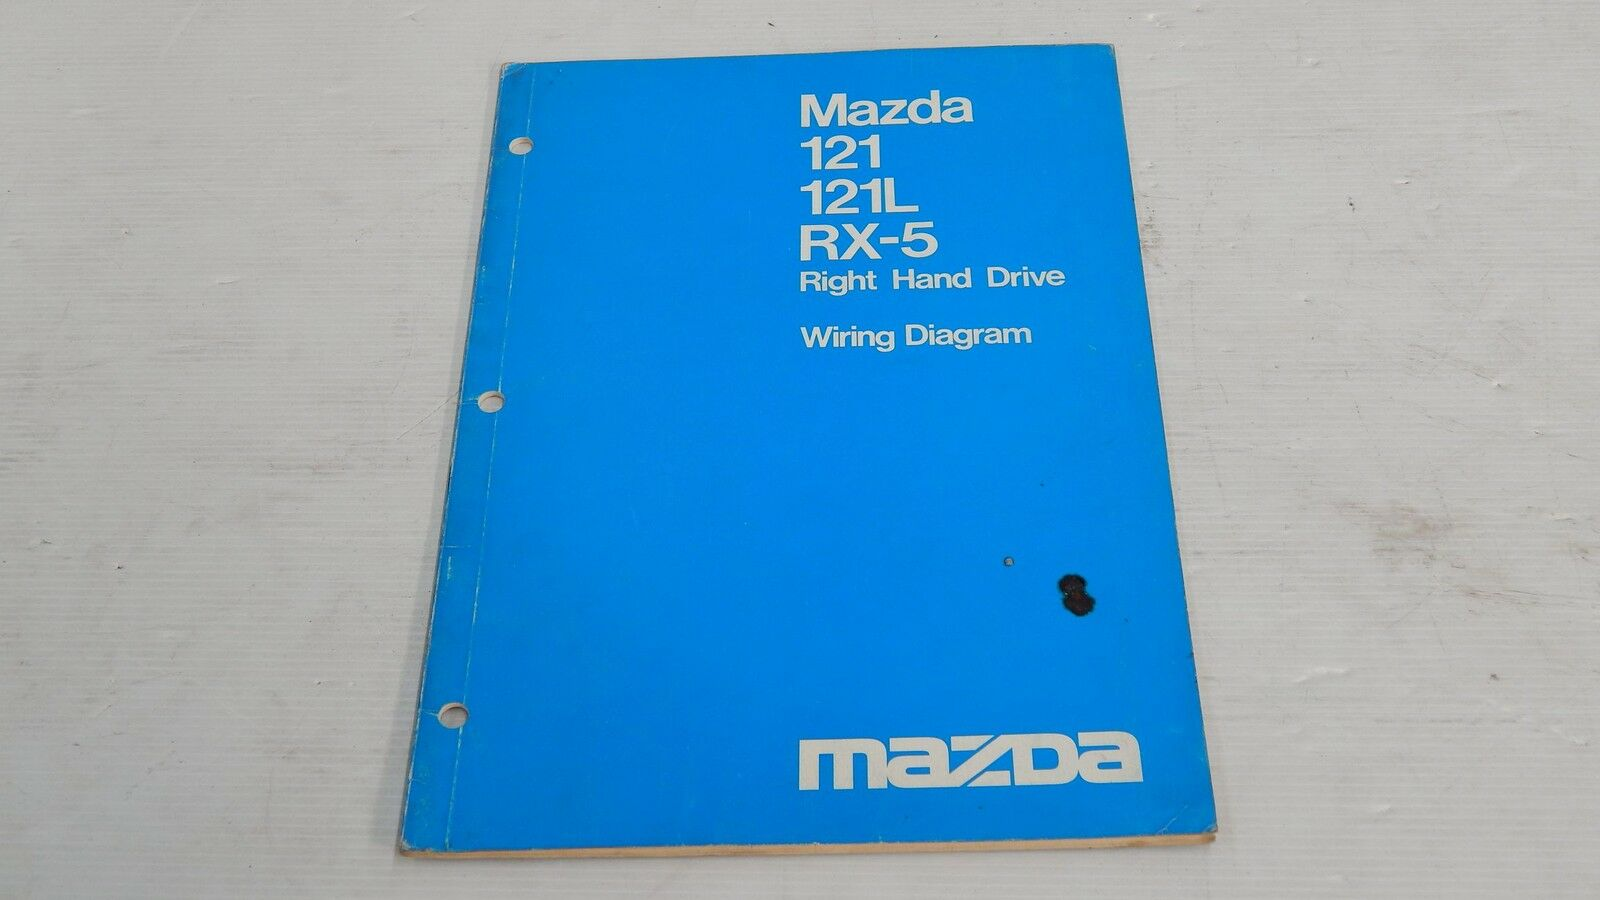 Remarkable Mazda 121 121L Rx5 Right Hand Drive Wiring Diagram Book Original Wiring Digital Resources Jebrpcompassionincorg